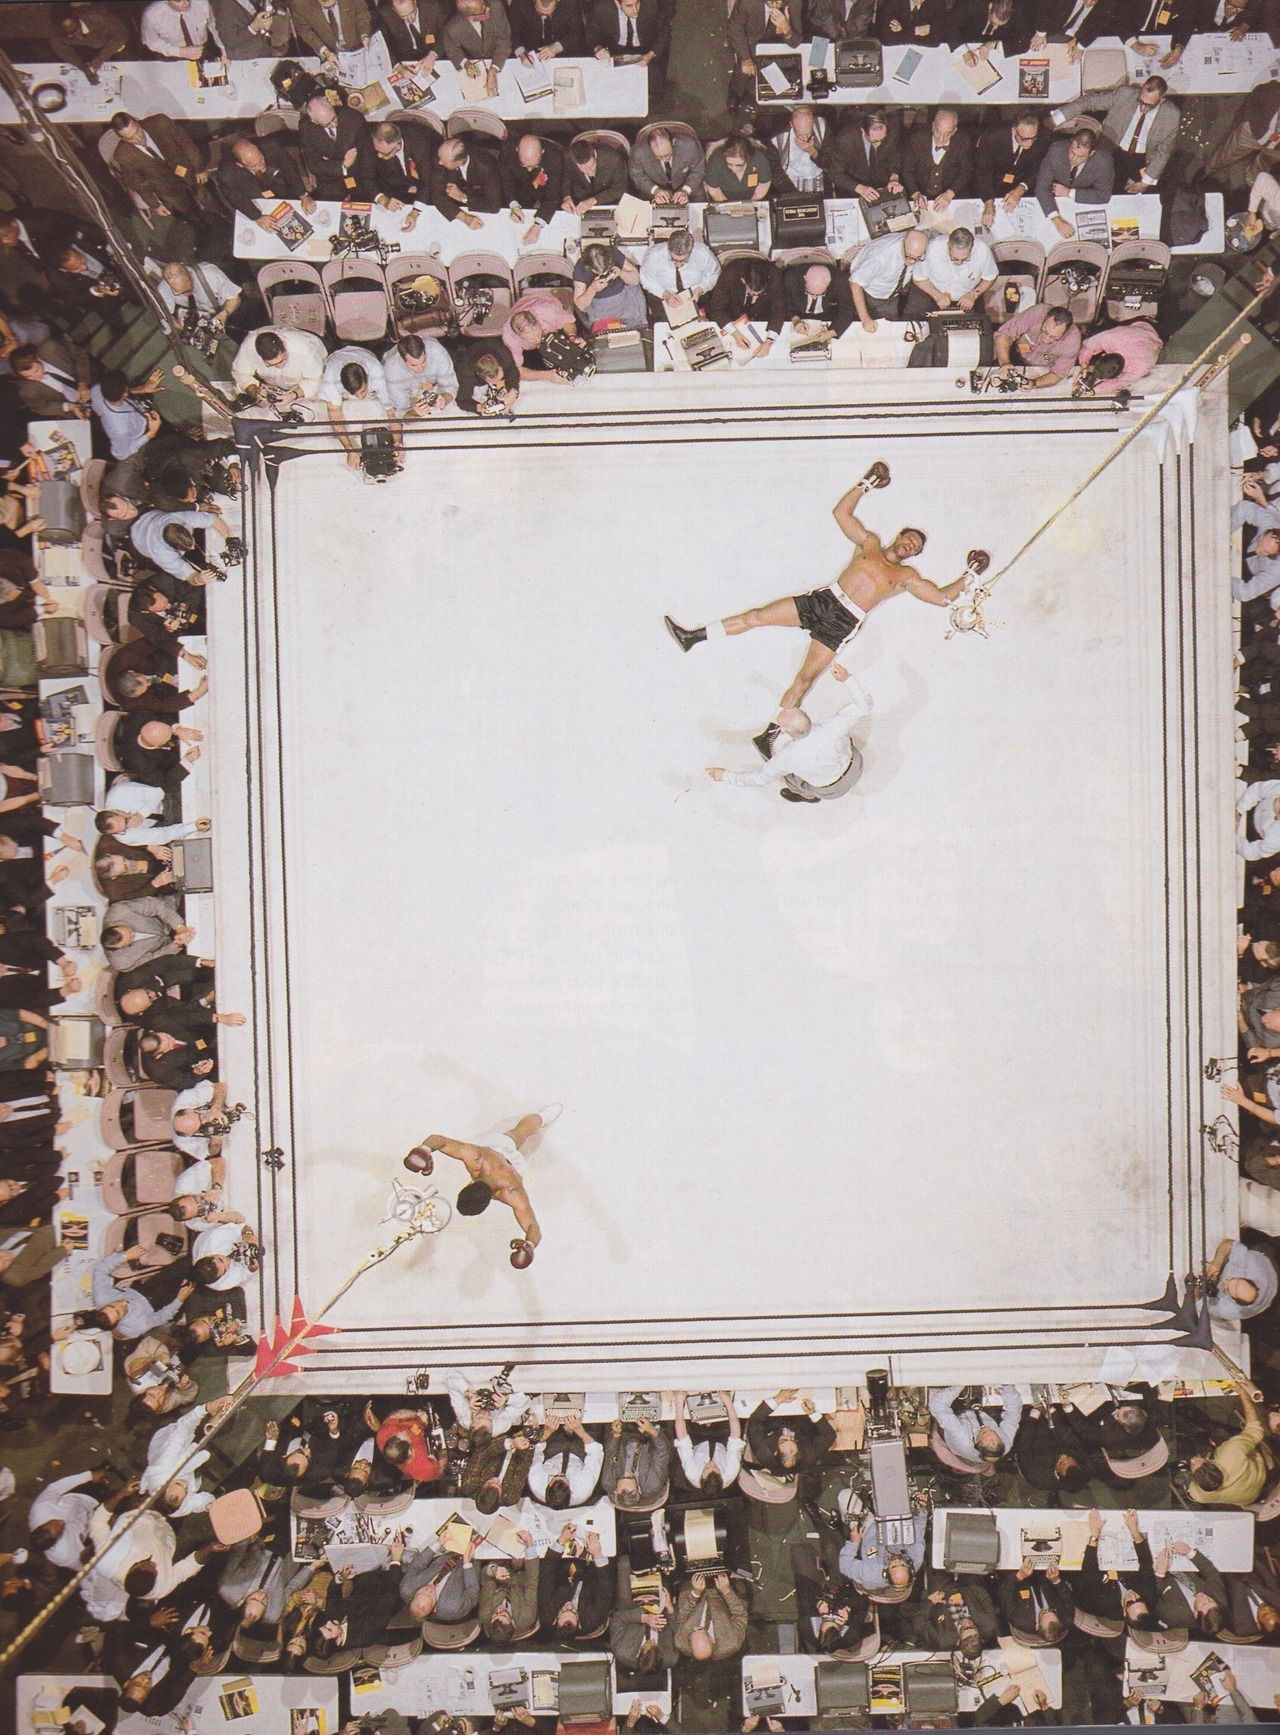 Now that's an ill perspective to look at this Ali knockout from. I wonder who took this shot?